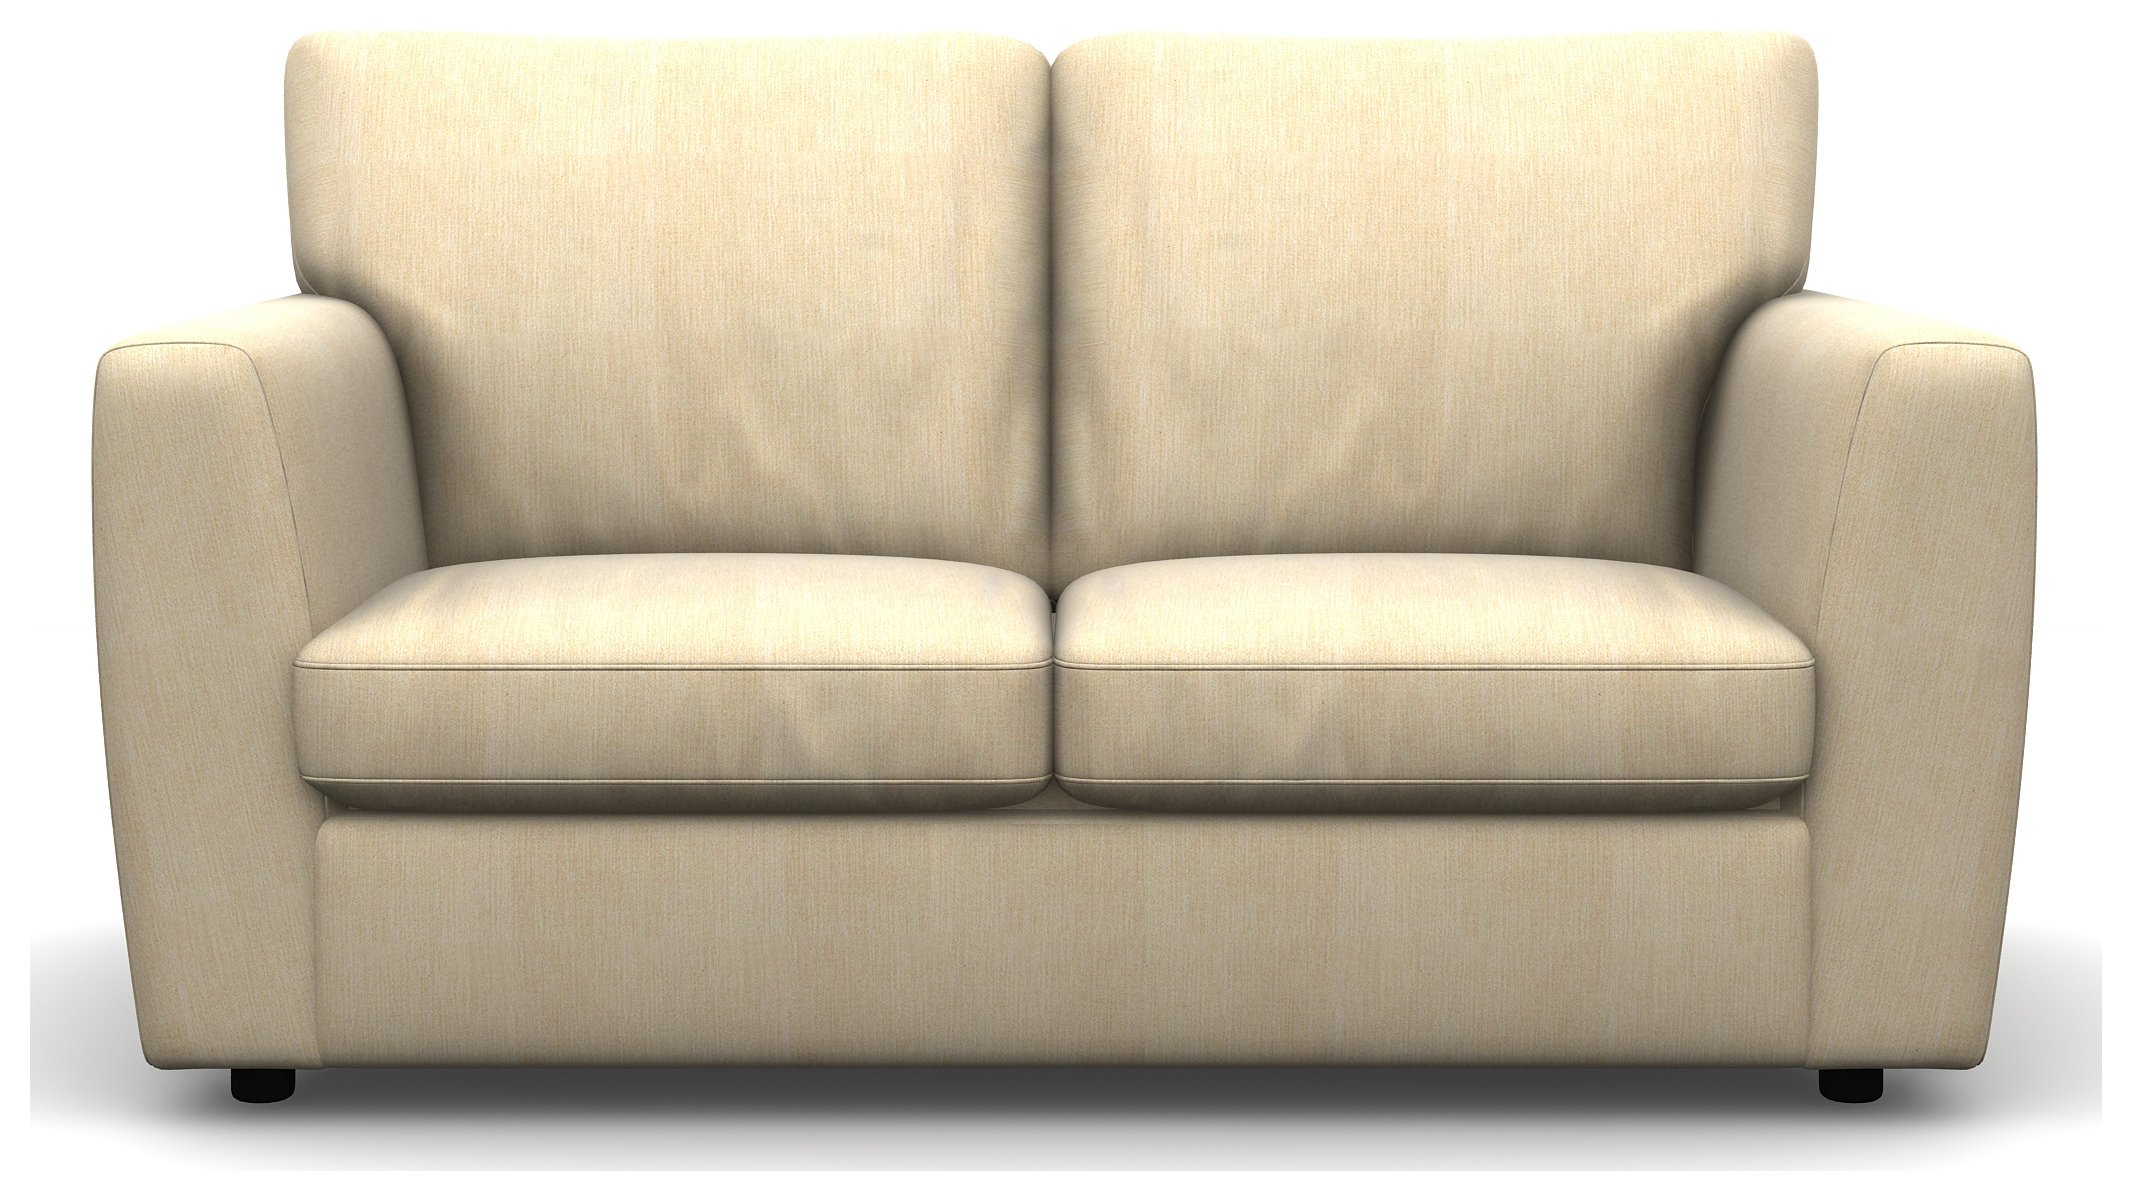 argos ava fabric sofa review oversized throws heart of house lucas 2 seater beige